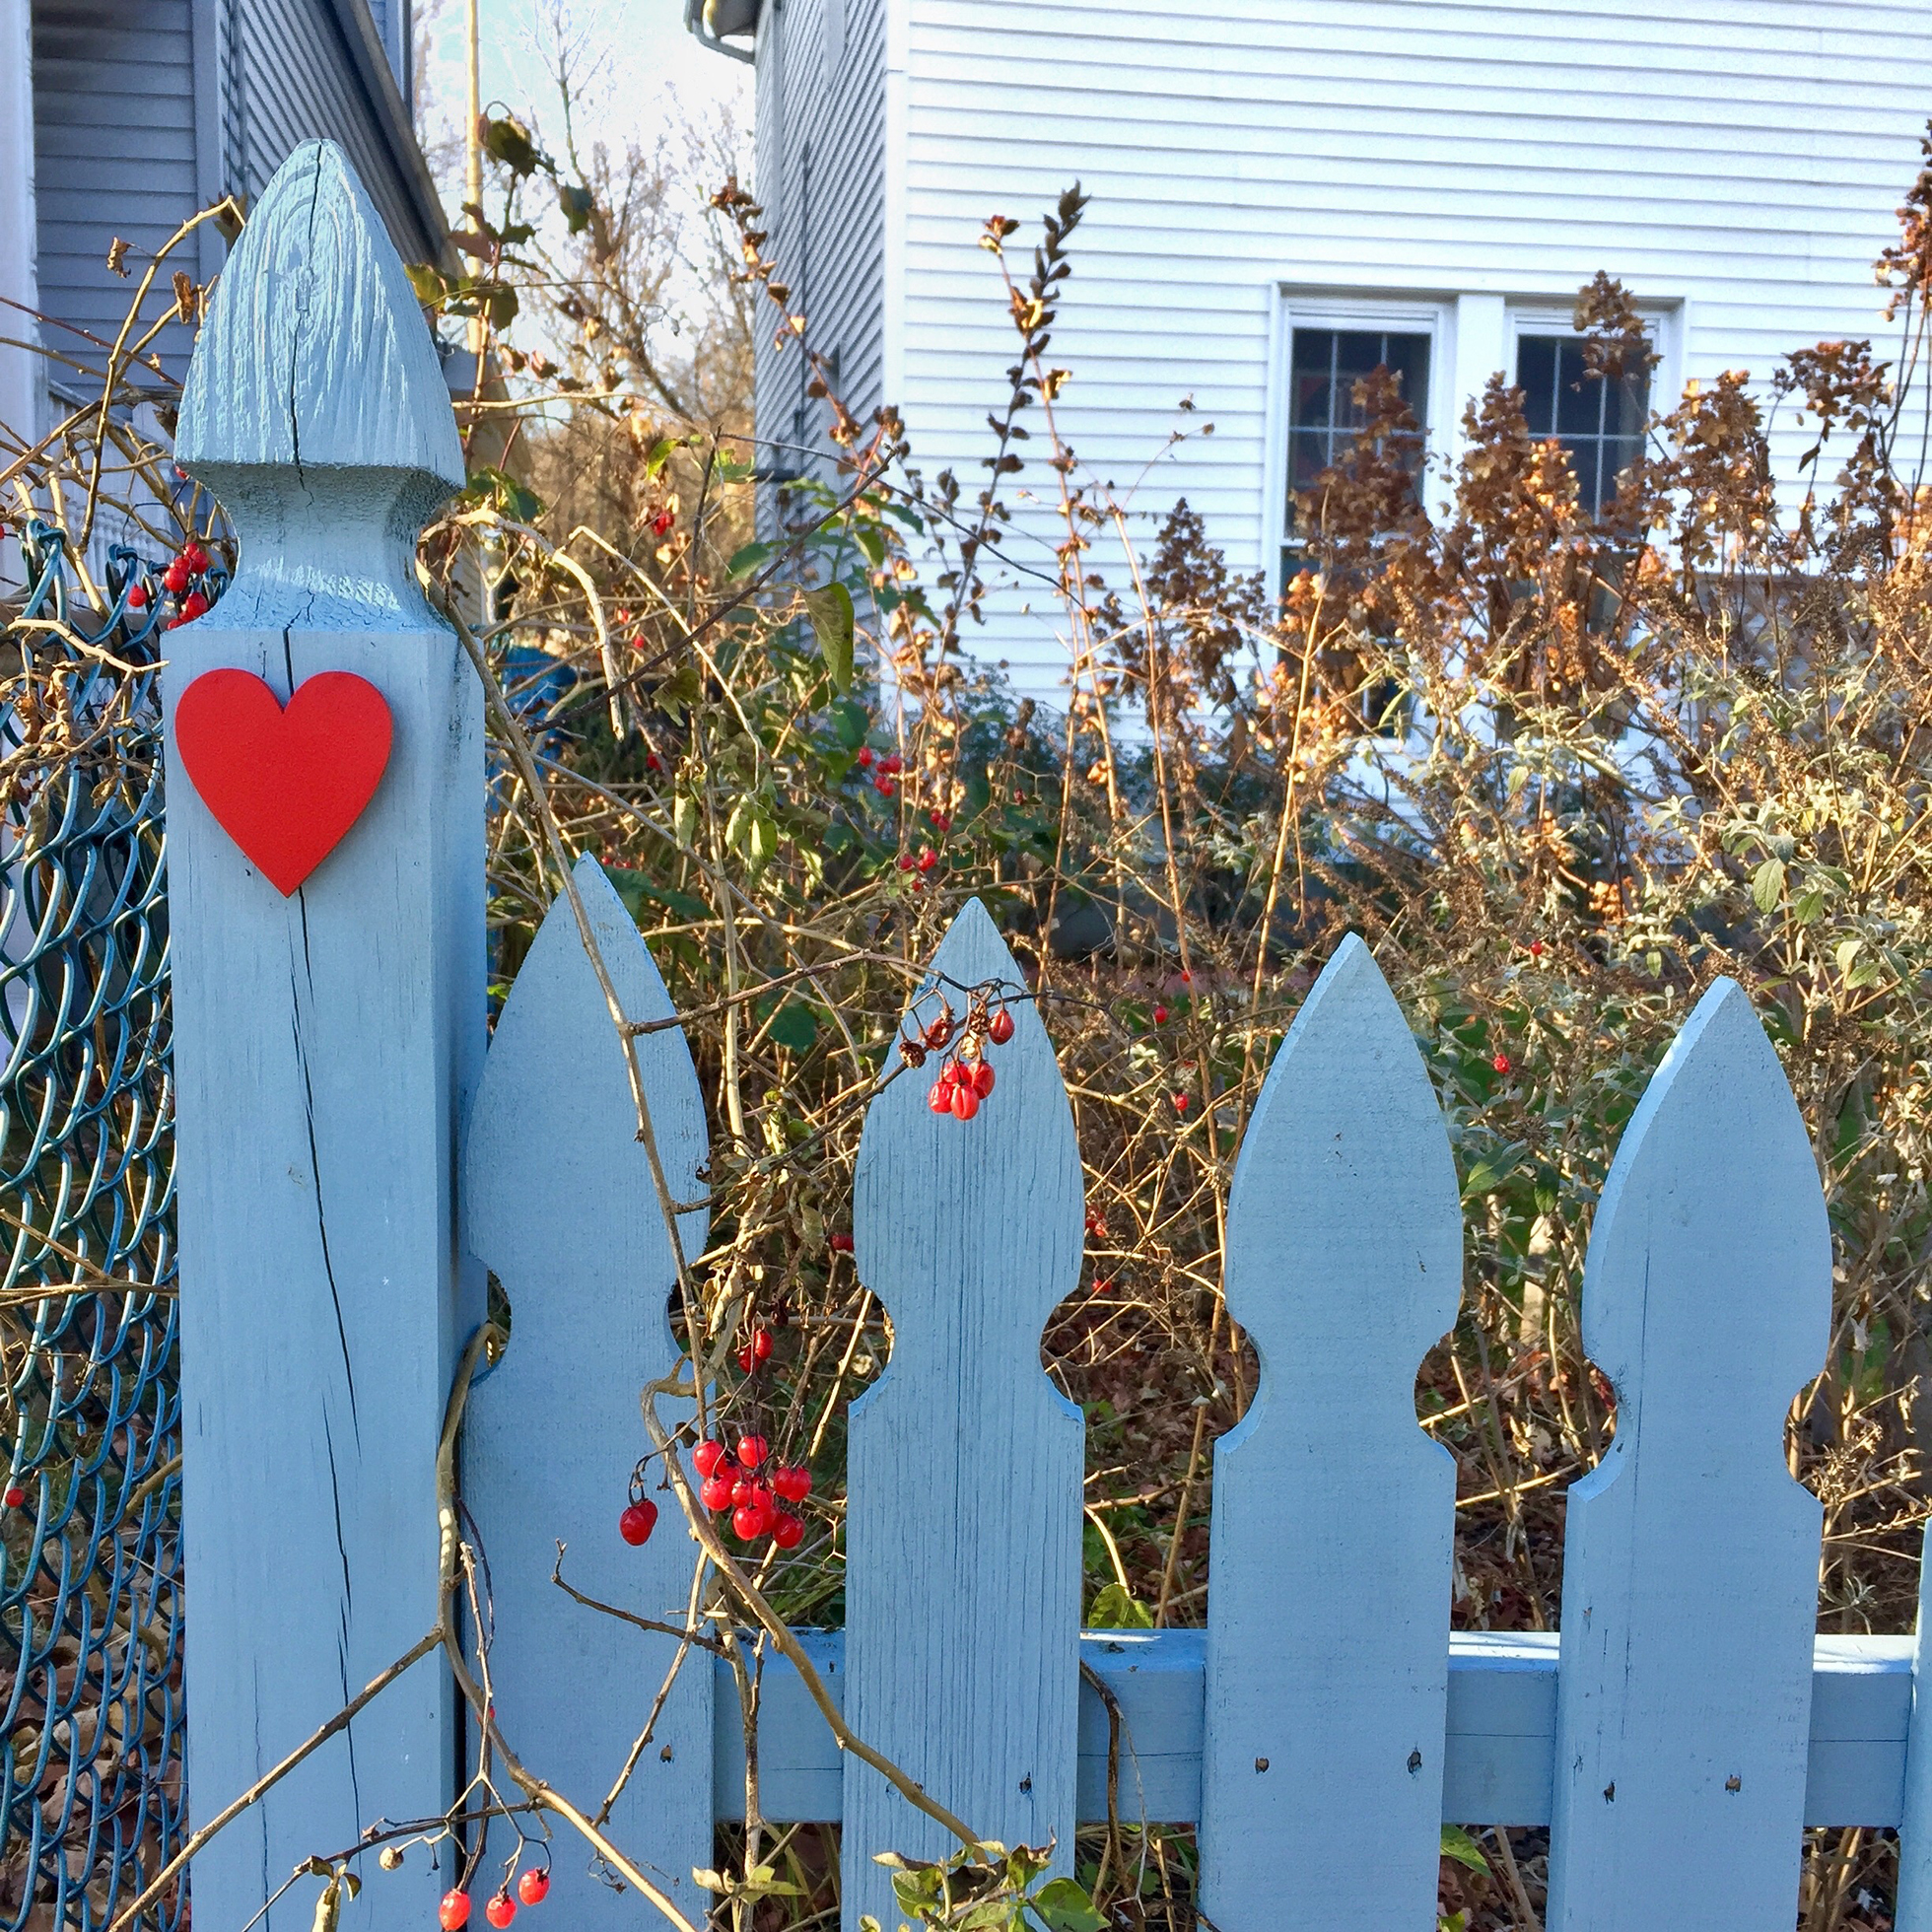 Gray, wooden fence with red heart in front of lawn debris